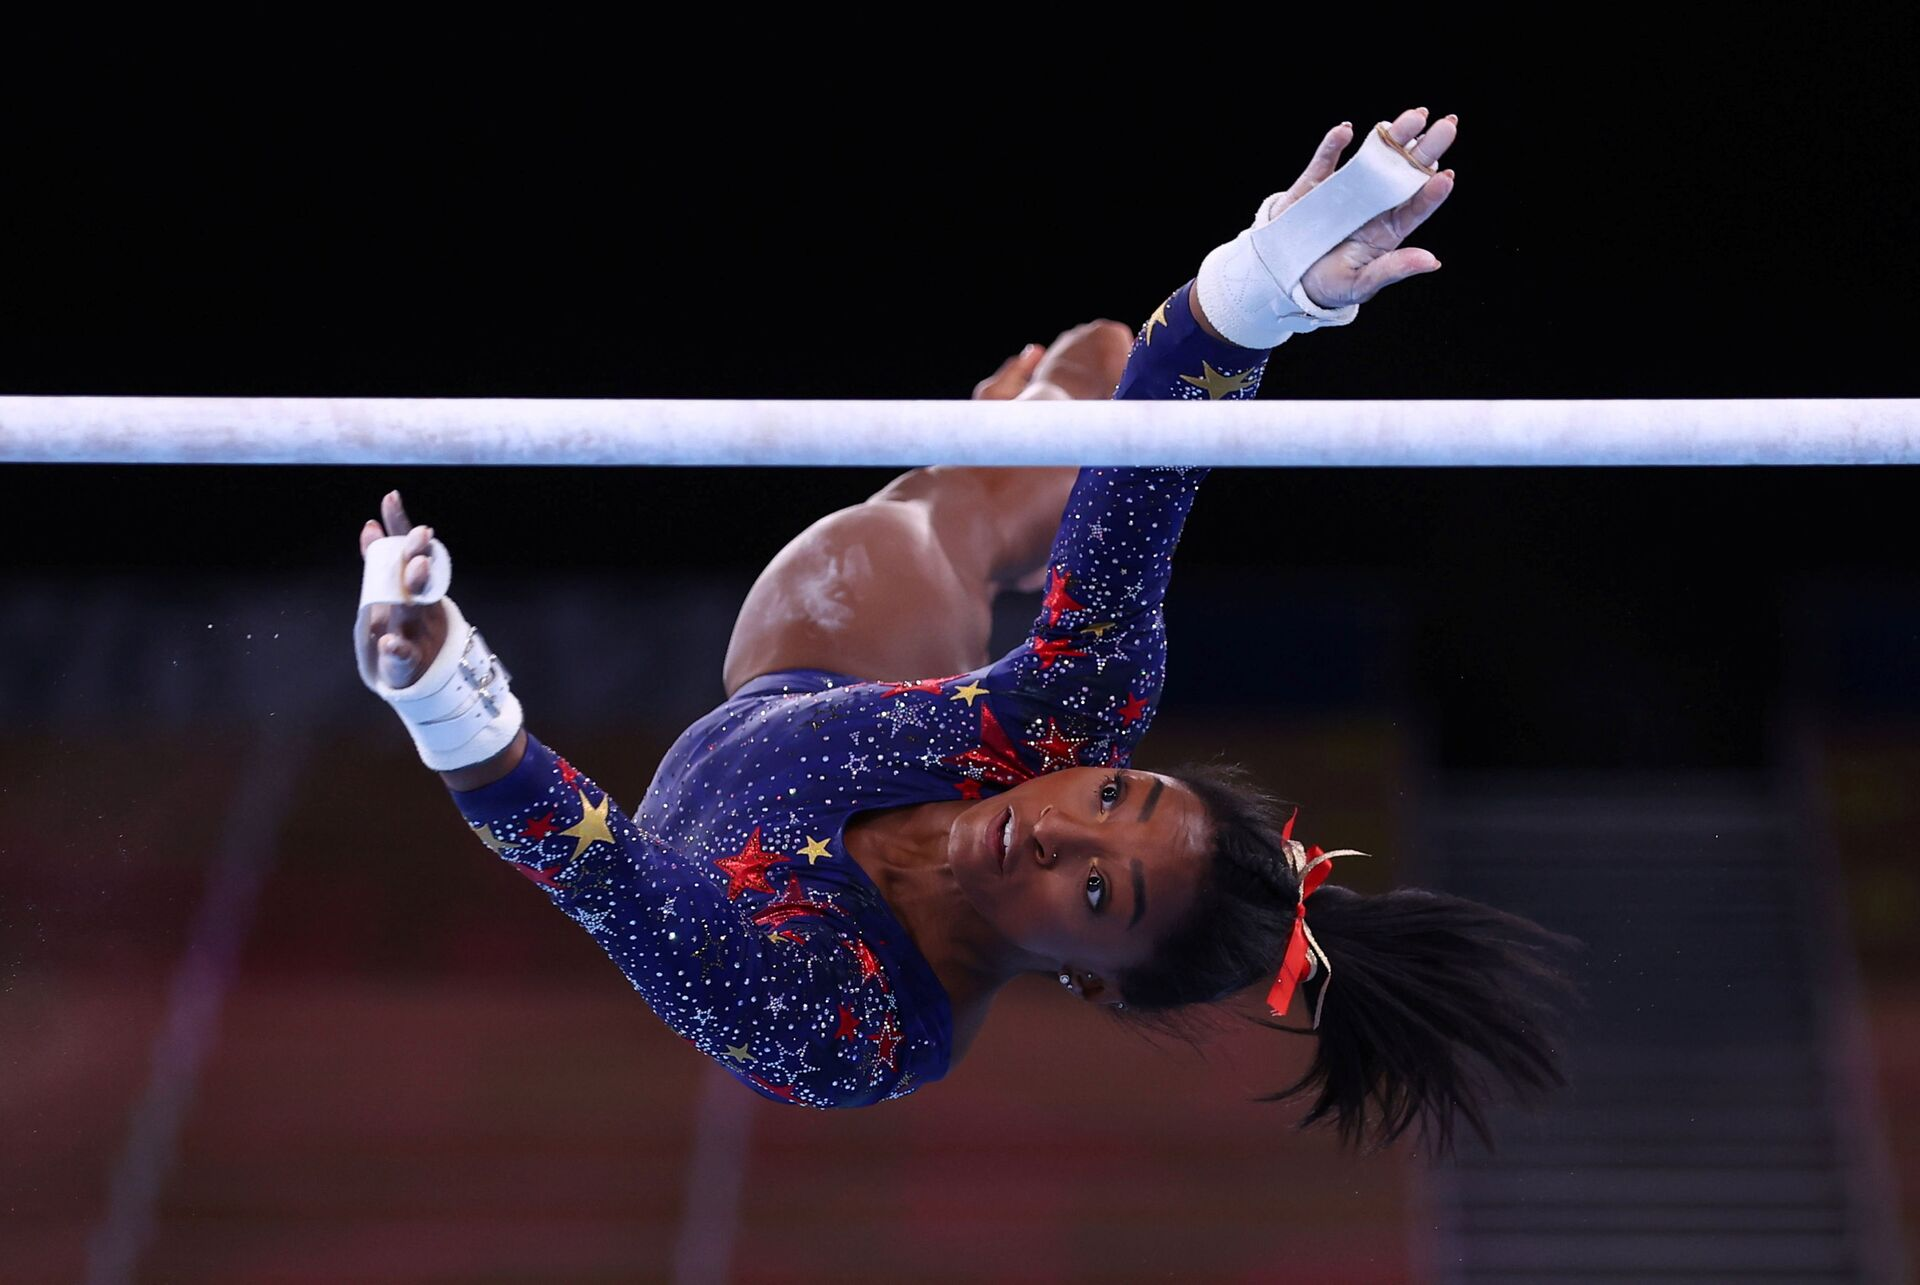 Tokyo 2020 Olympics - Gymnastics - Artistic - Women's Uneven Bars - Qualification - Ariake Gymnastics Centre, Tokyo, Japan - July 25, 2021. Simone Biles of the United States in action during the uneven bars REUTERS/Mike Blake/File photo  SEARCH OLYMPICS DAY 3 FOR TOKYO 2020 OLYMPICS EDITOR'S CHOICE, SEARCH REUTERS OLYMPICS TOPIX FOR ALL EDITOR'S CHOICE PICTURES. - Sputnik International, 1920, 07.09.2021